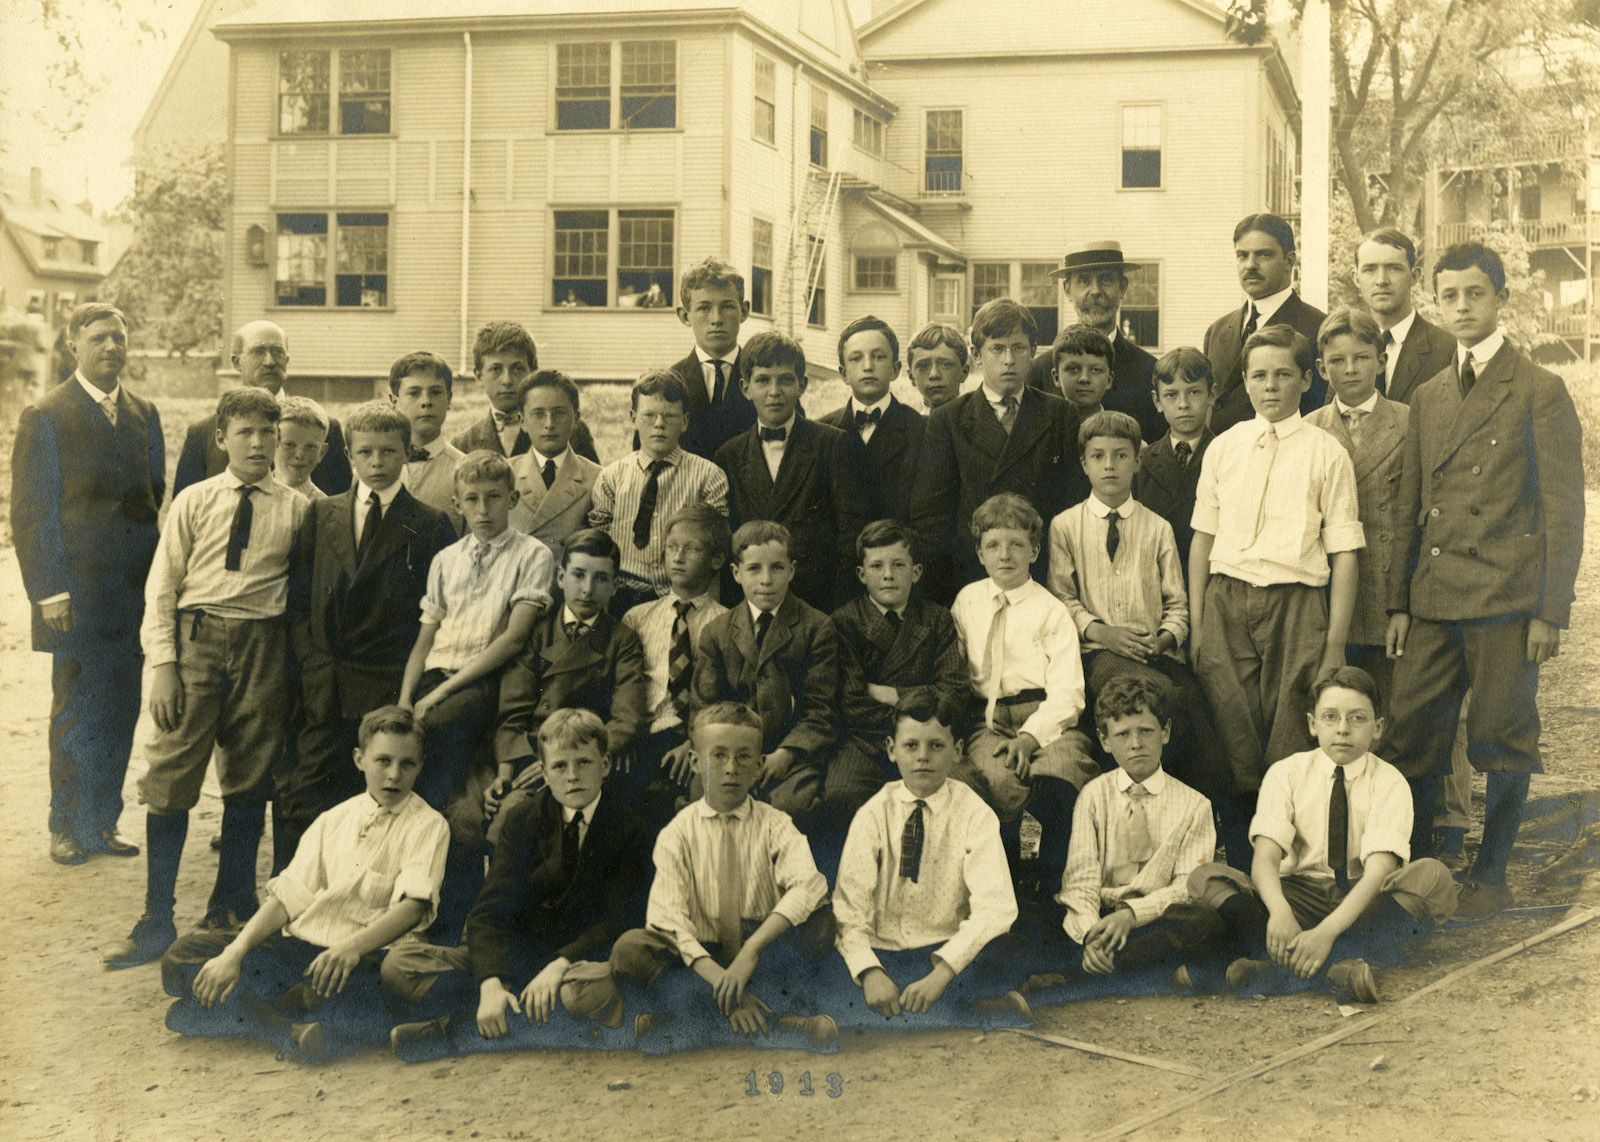 Sixies in 1908 at the Kearsarge Avenue schoolhouse